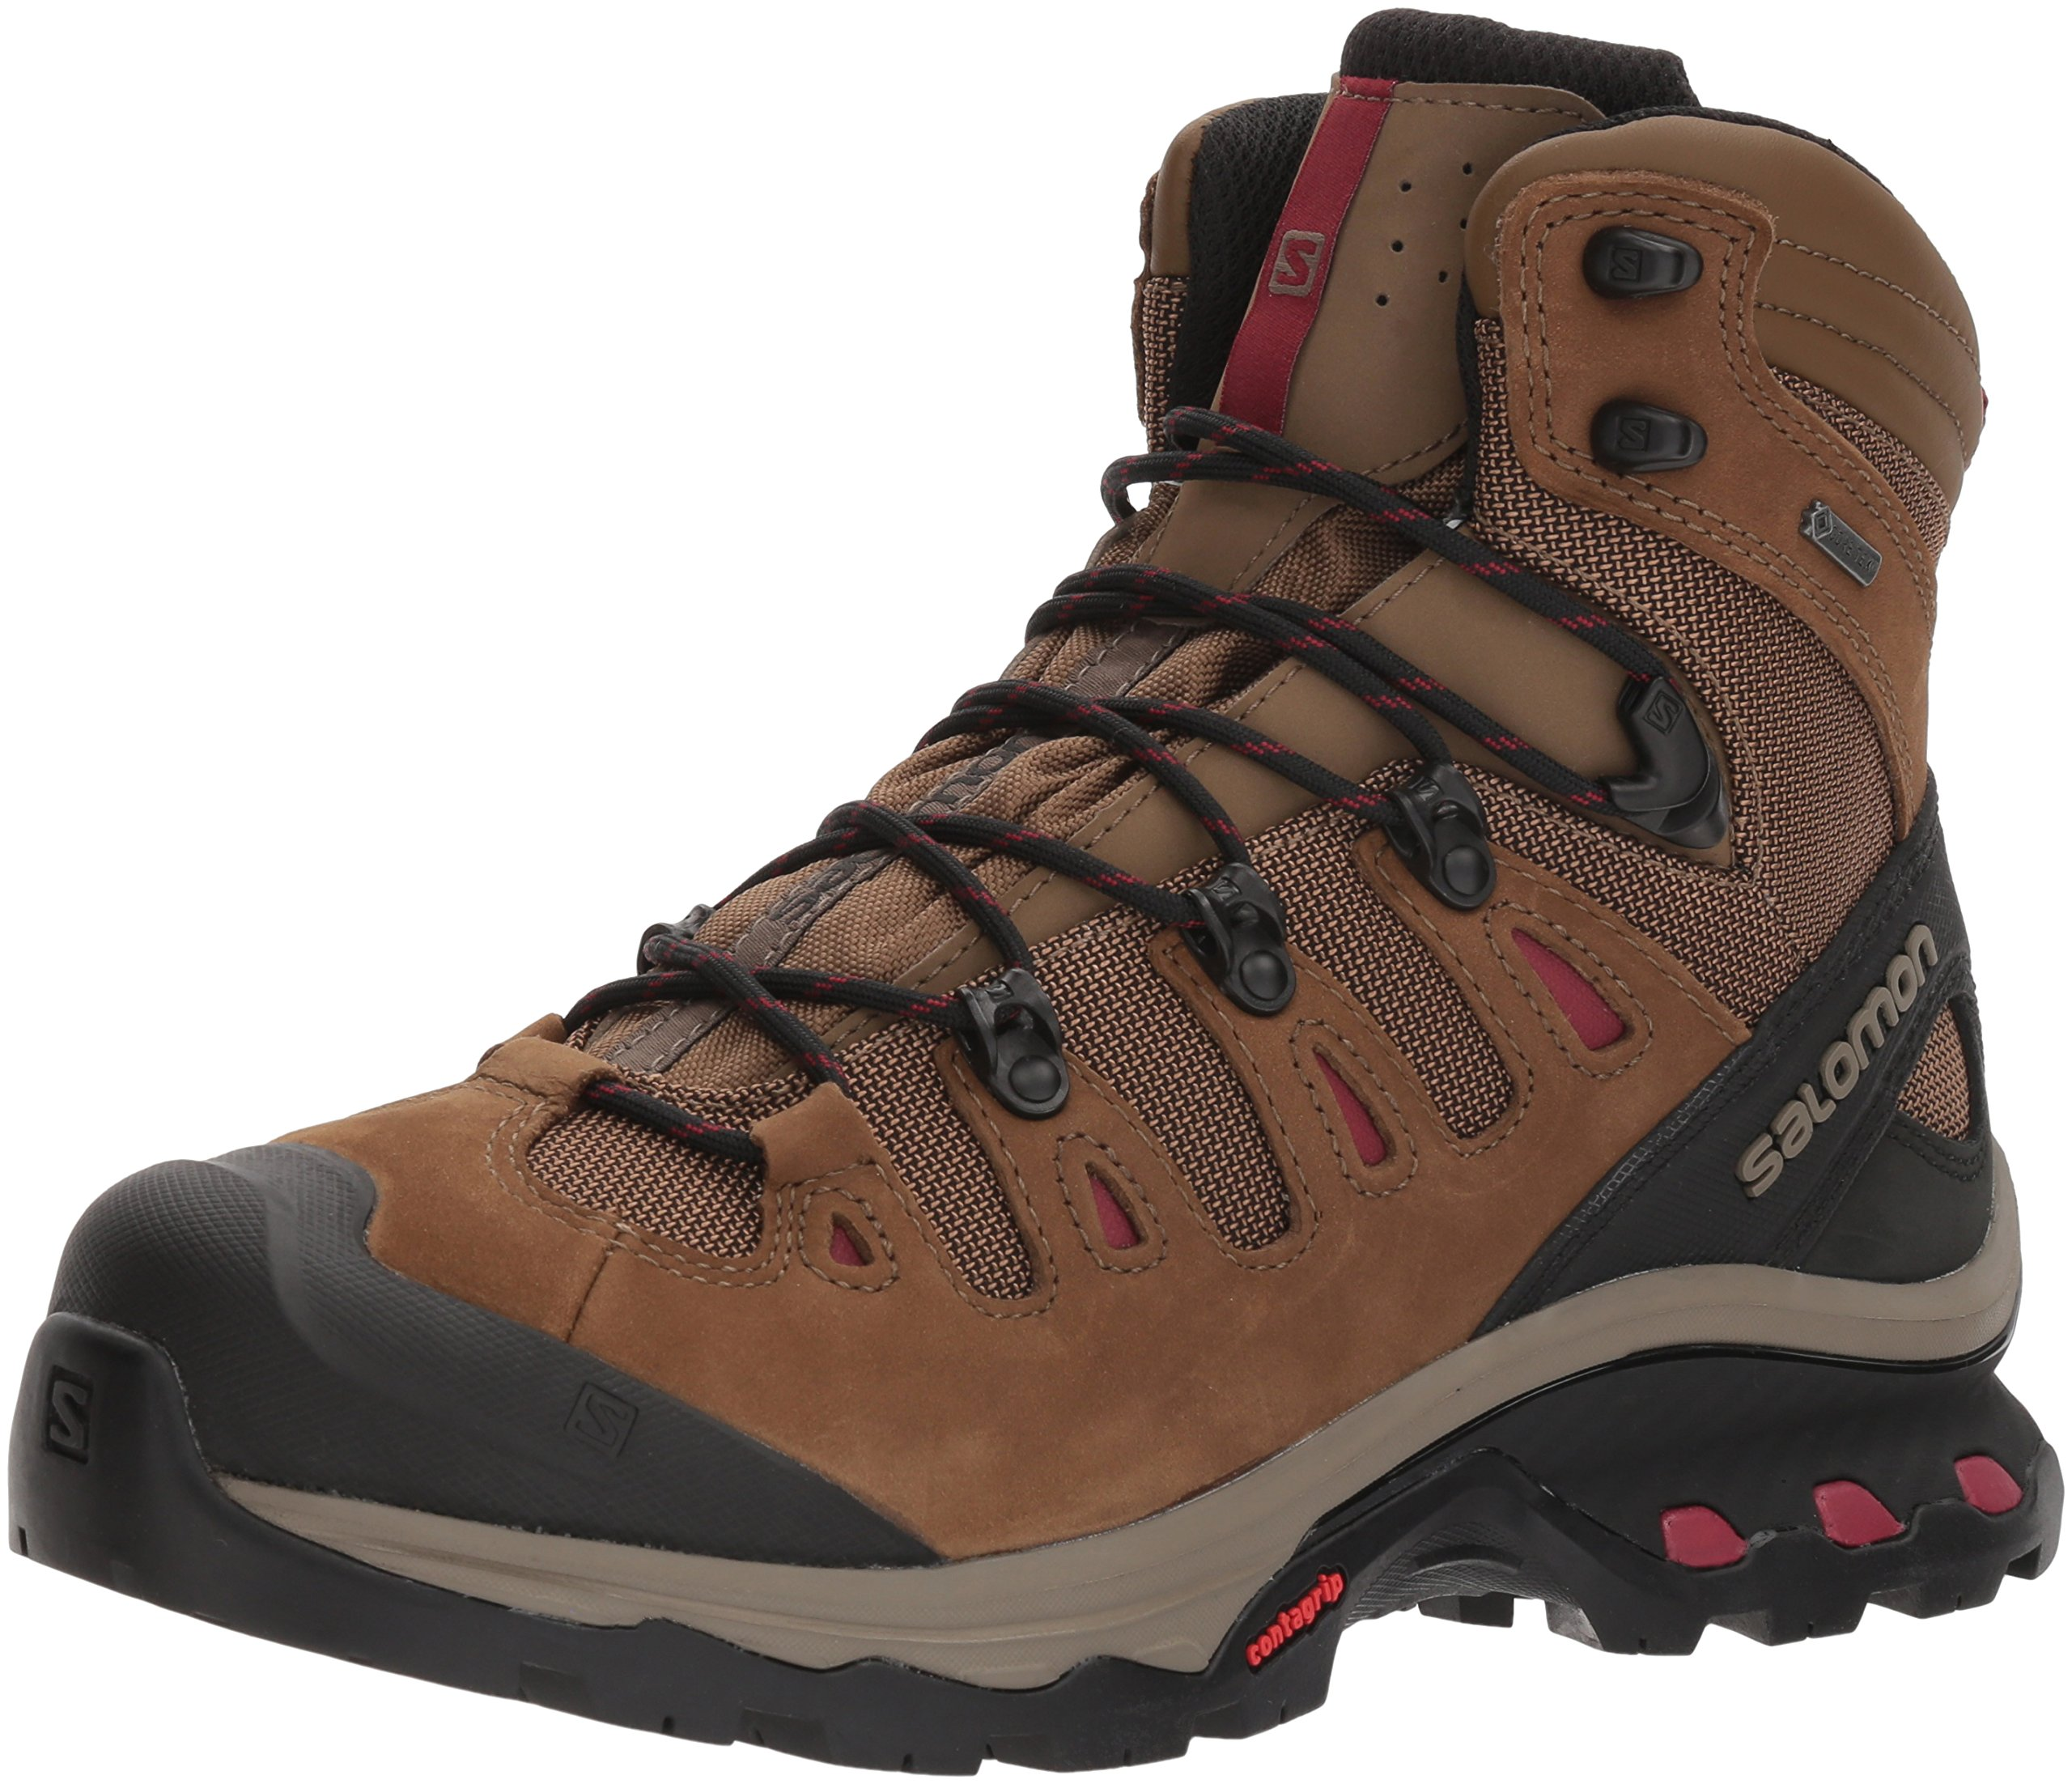 Salomon Women's Quest 4D 3 Gtx W Backpacking Boots, Teak, 6.5 B US